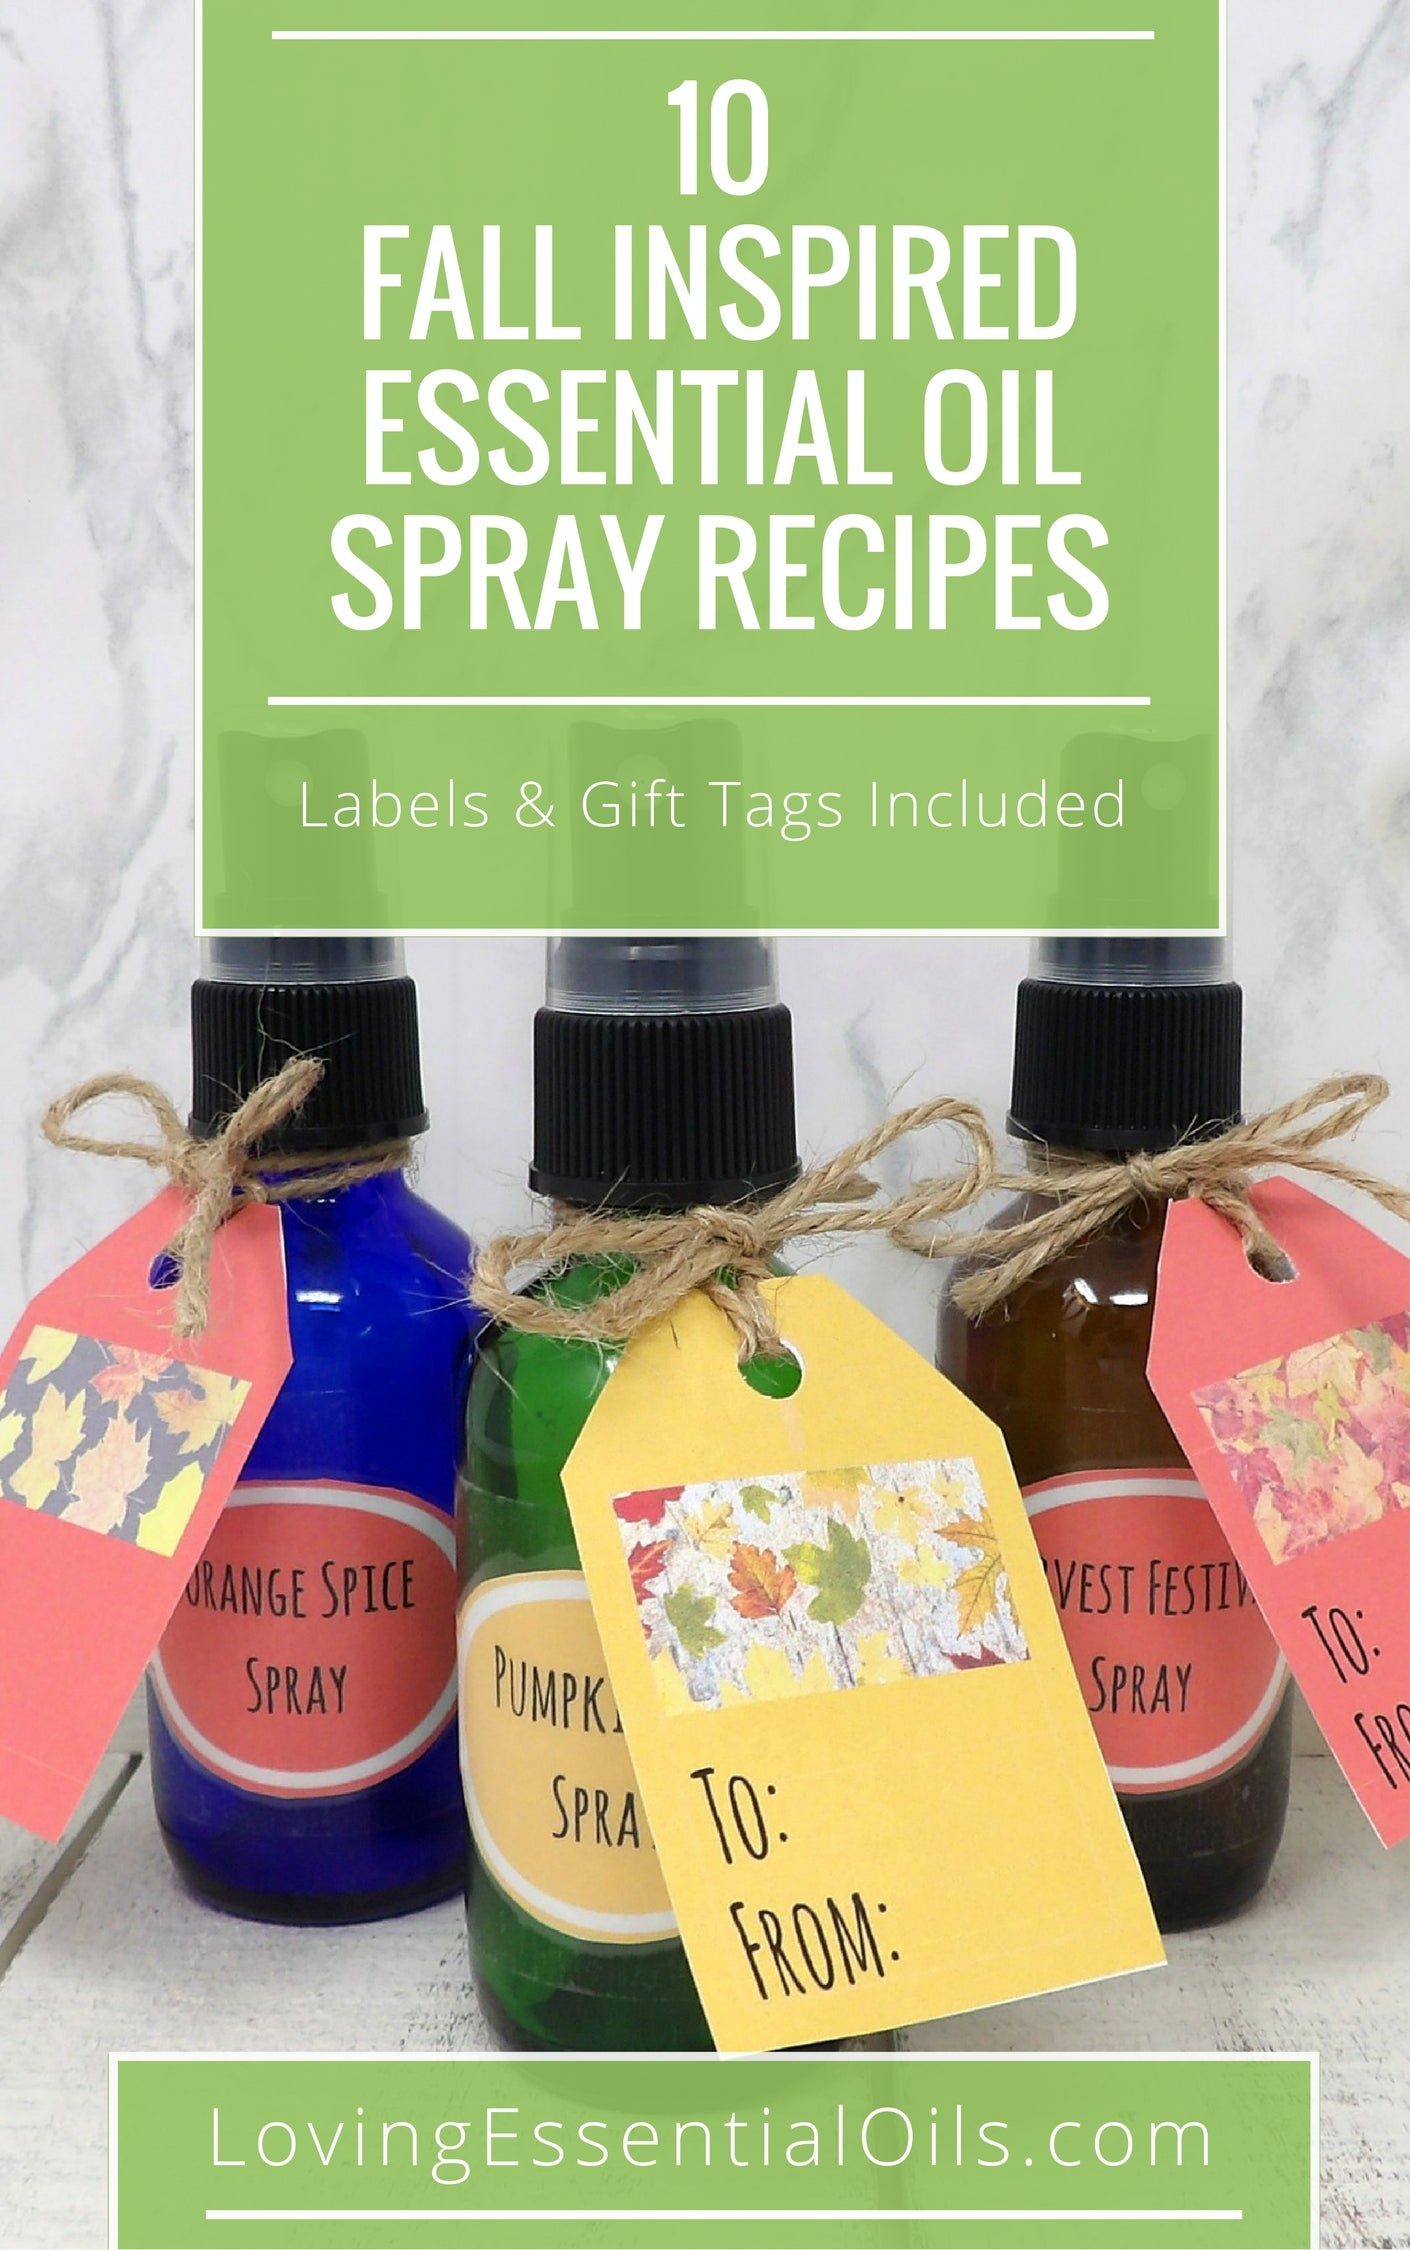 Fall Inspired {Free Printable} Essential Oil Spray Recipes Guide by Loving Essential Oils